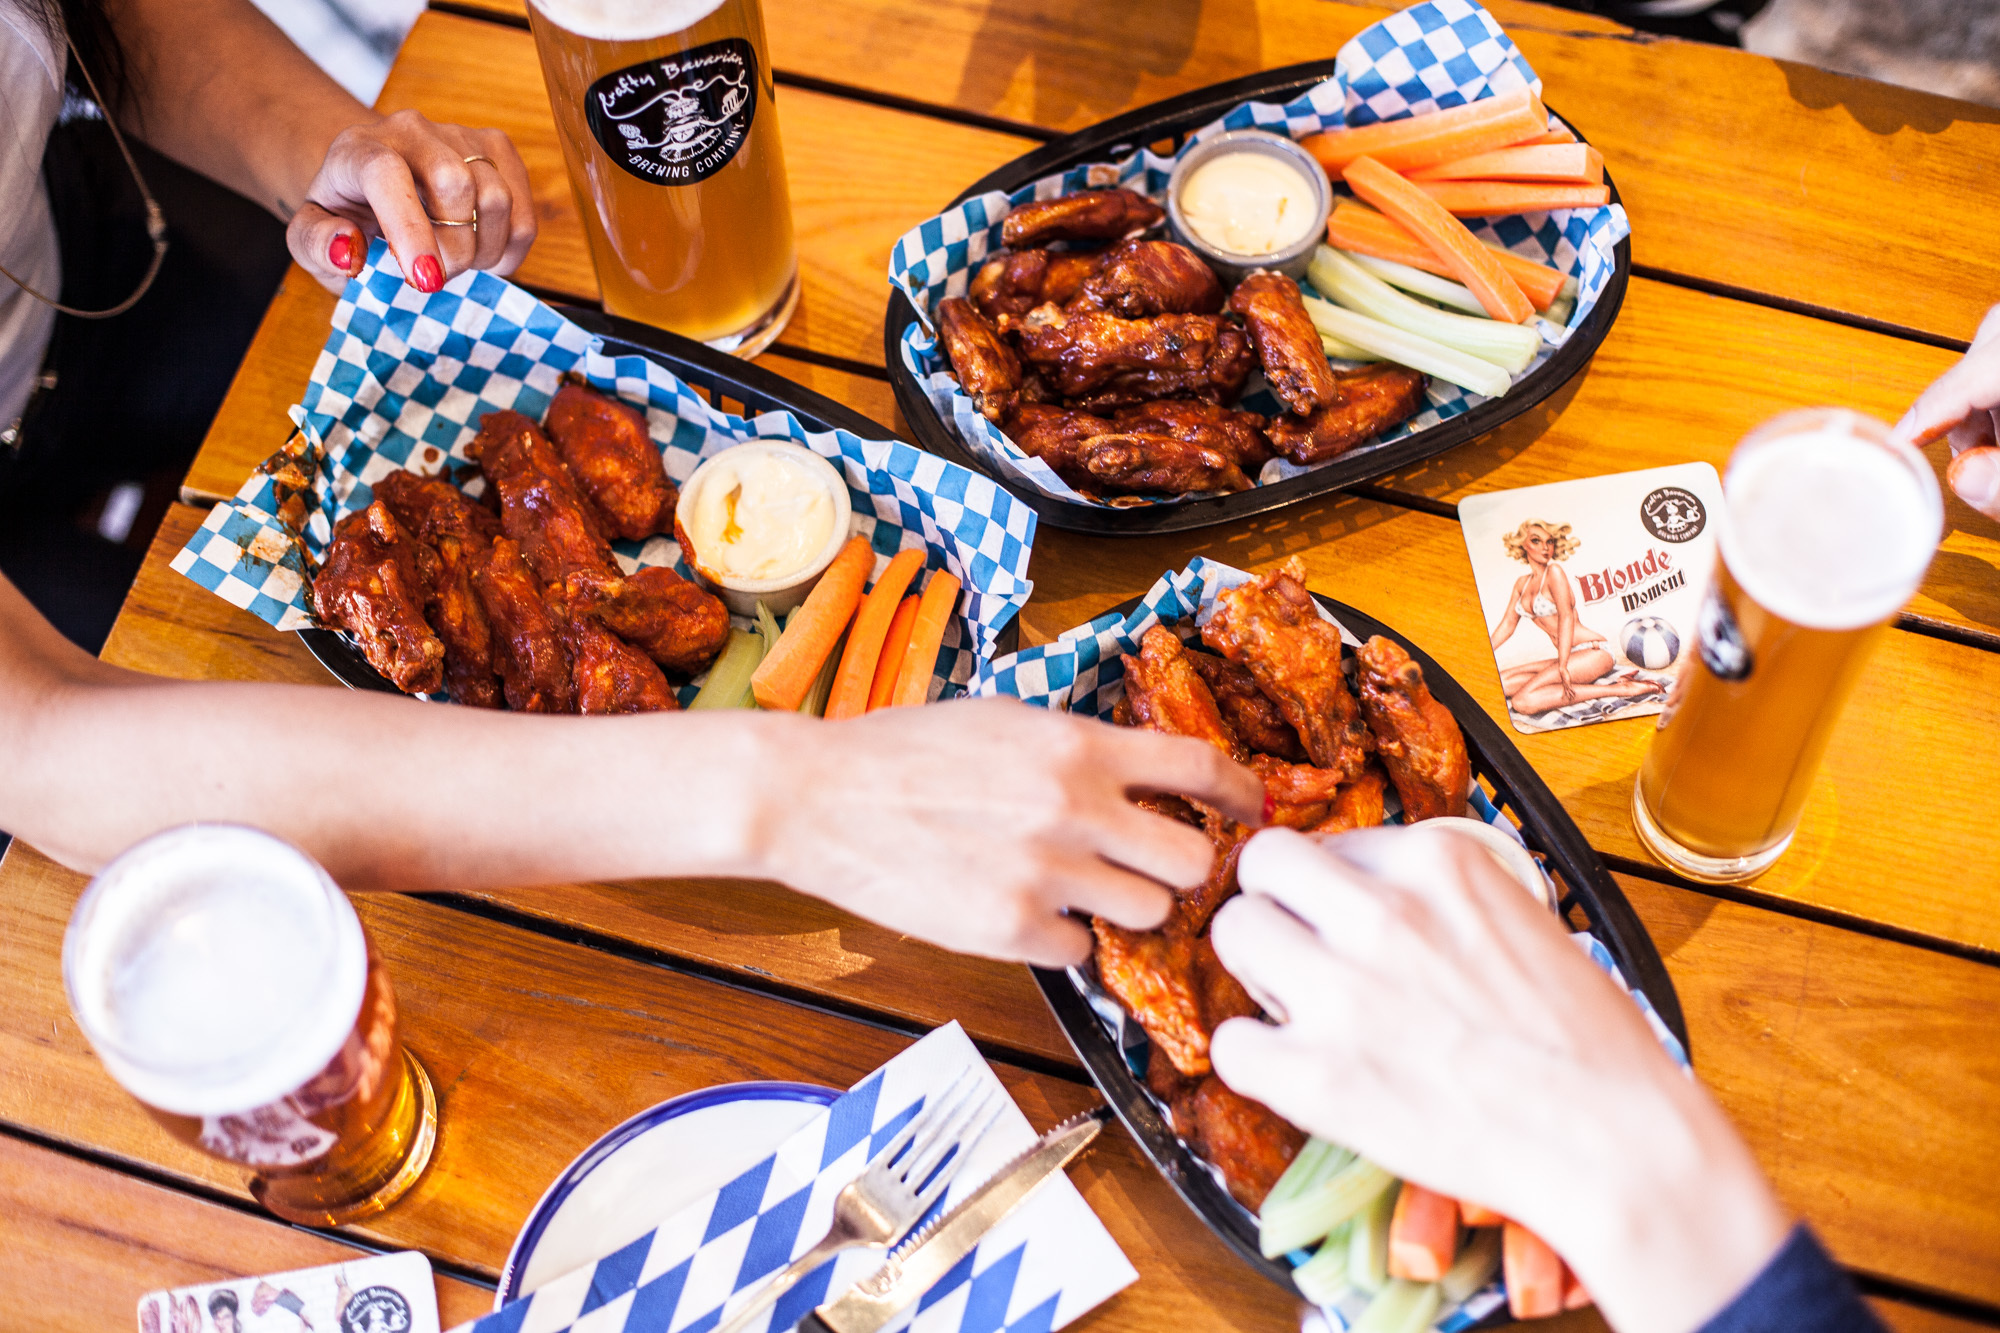 10c Wings for National Chicken Wing Day